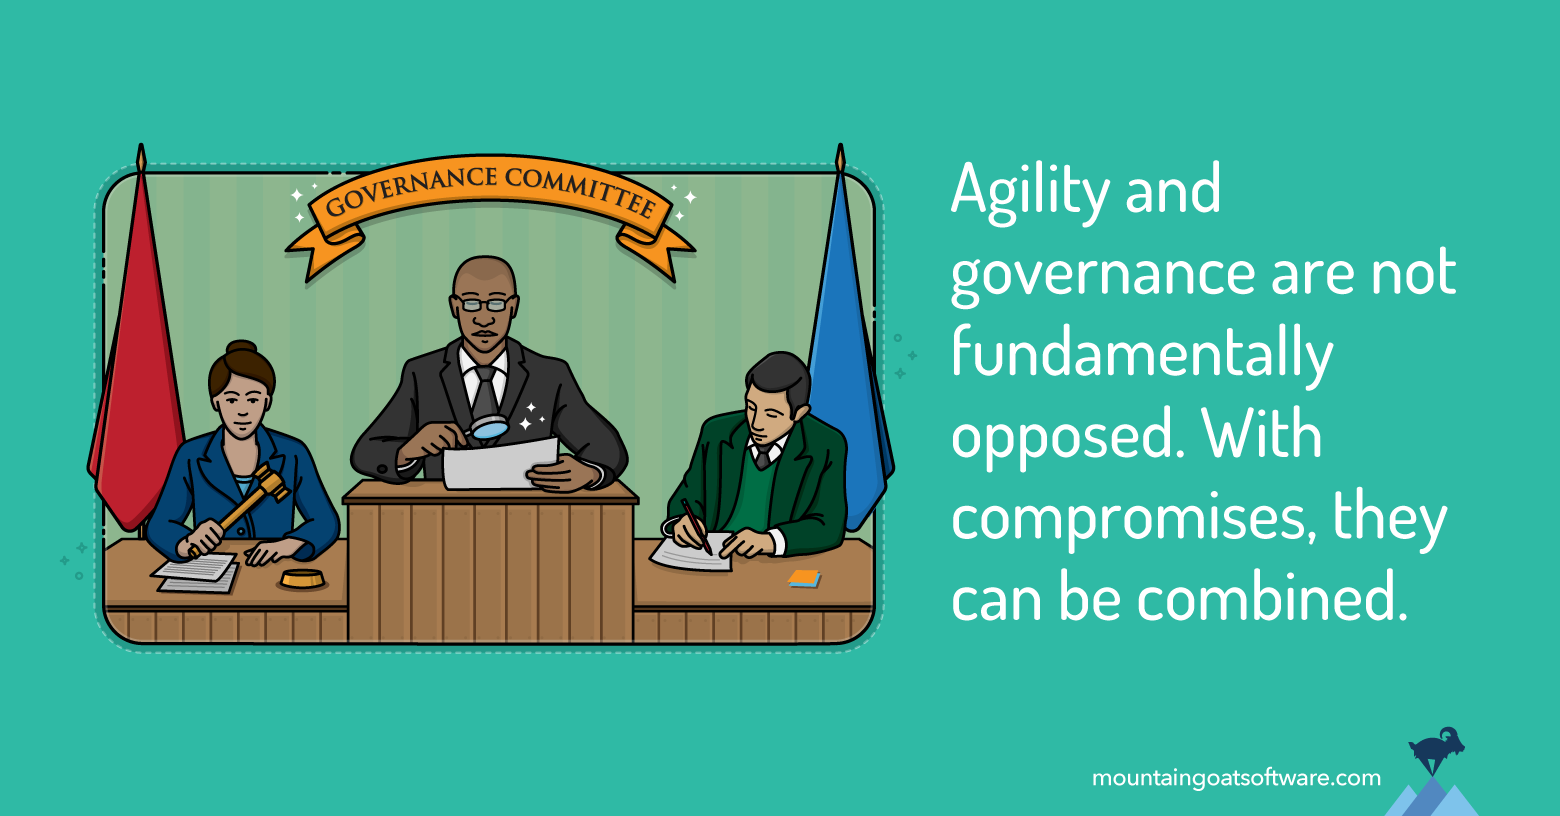 Incorporating Governance or Oversight into an Agile Project